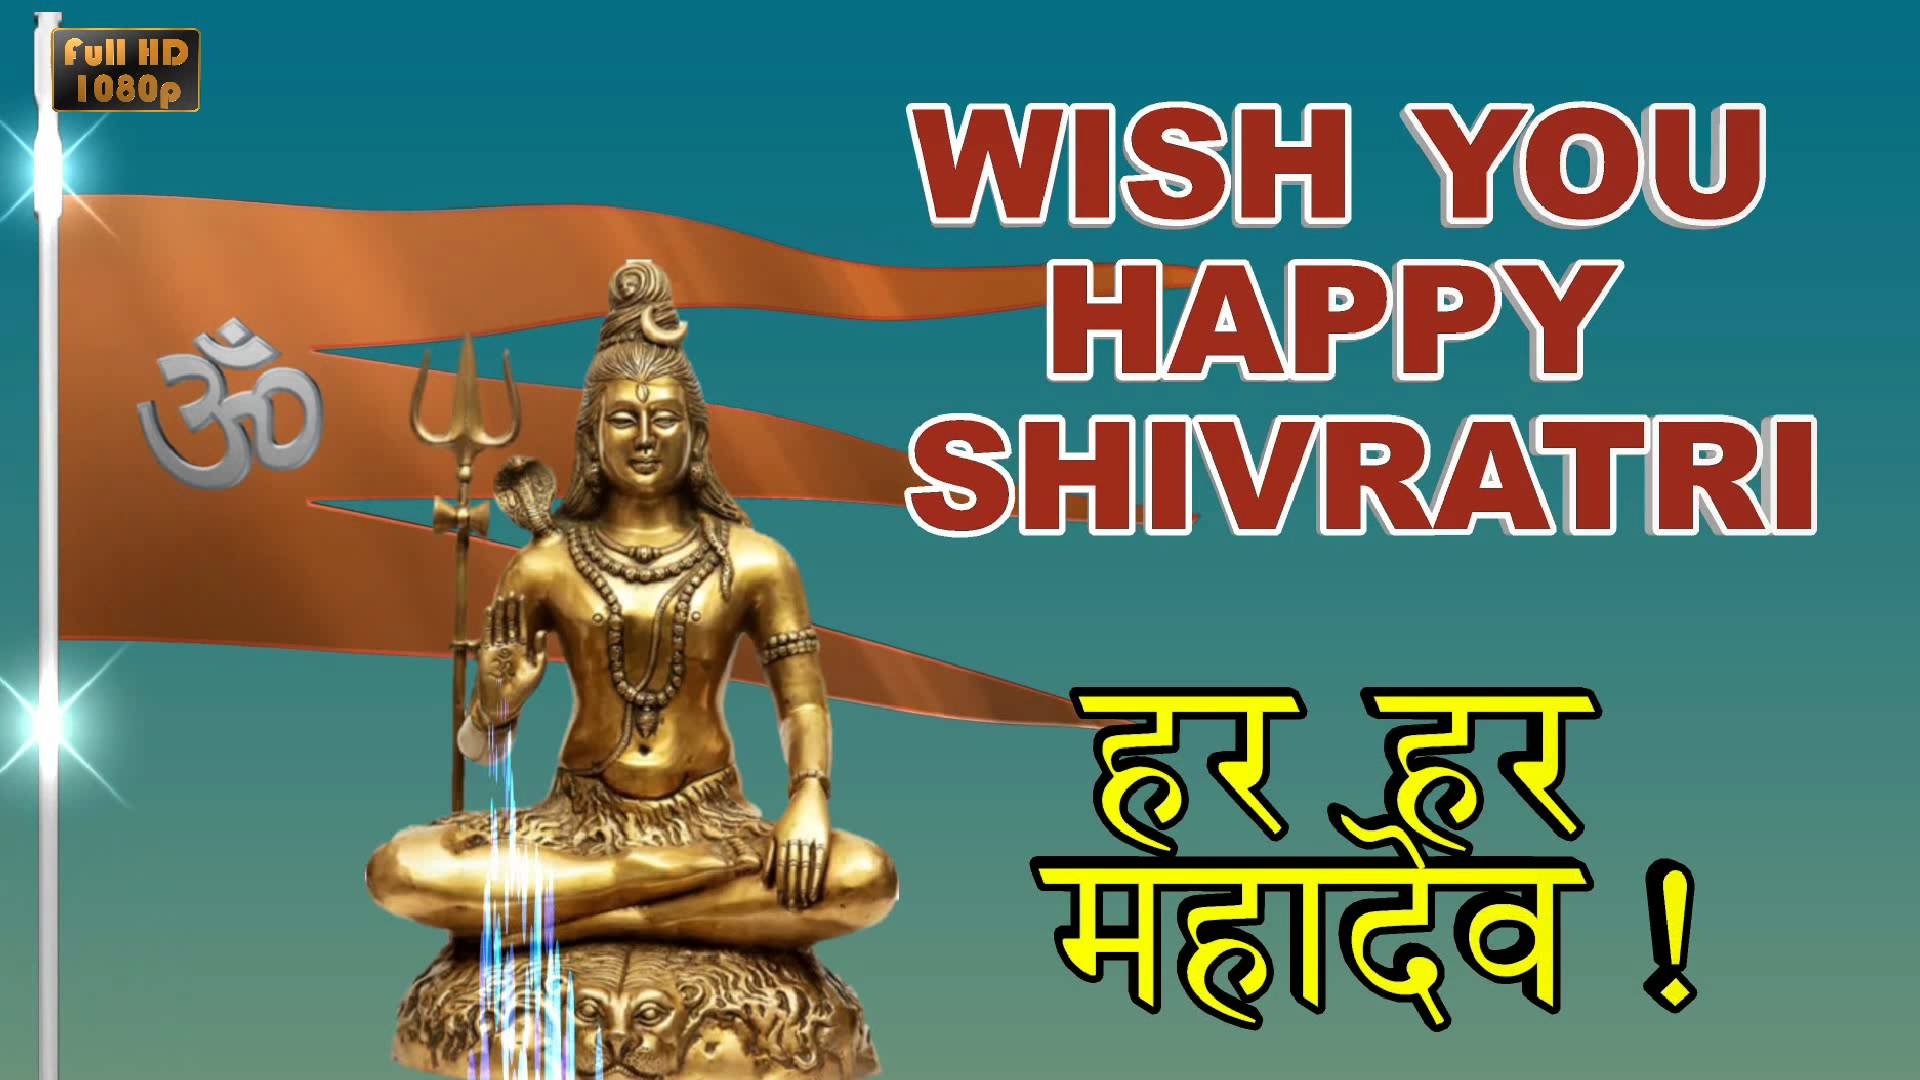 Happy Mahashivratri Wishes in Hindi 2018 |Font |Language| Mubarak Ho